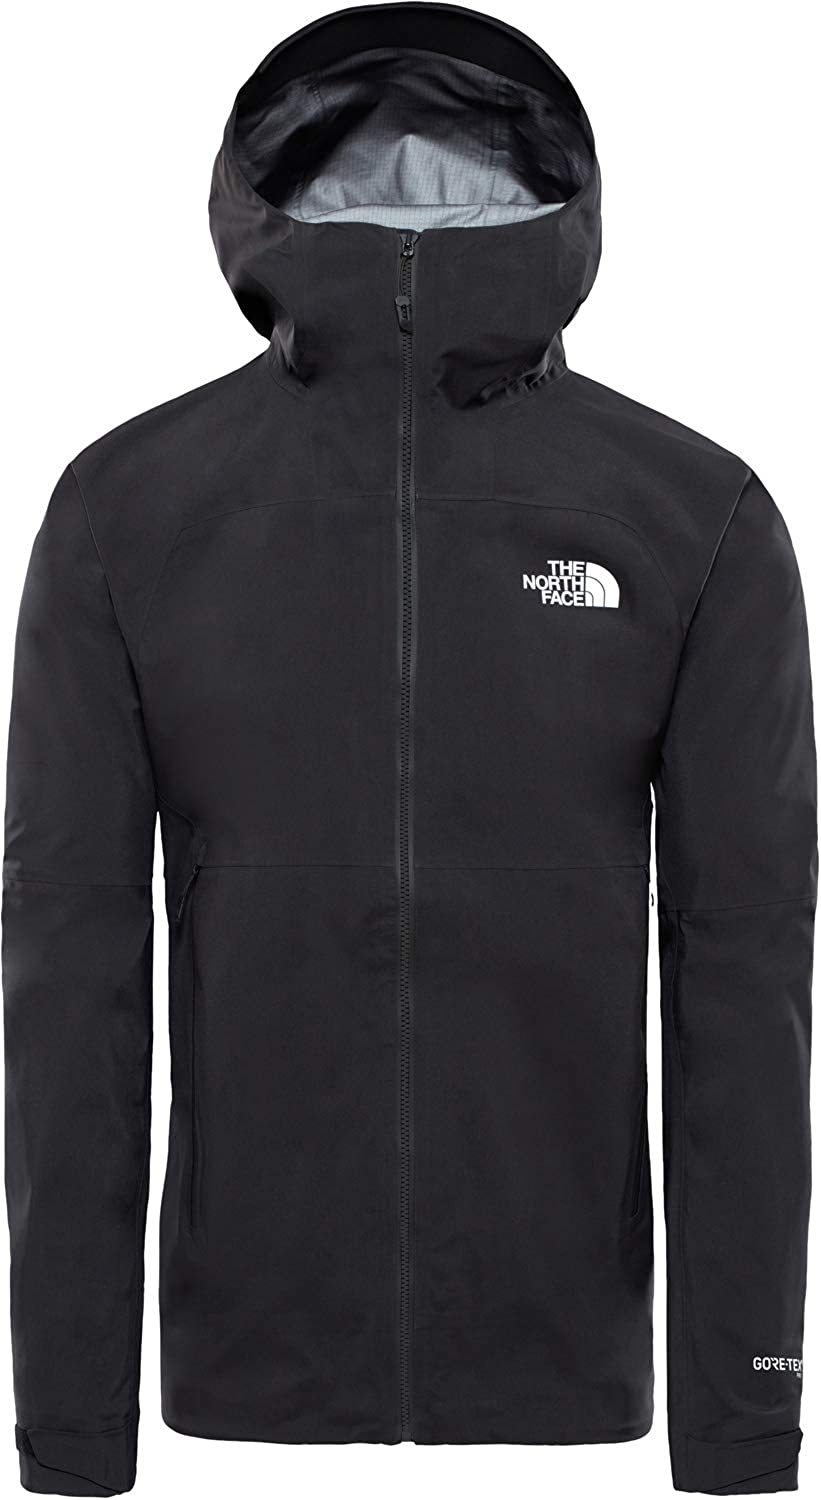 THE NORTH FACE Impendor Jacket Men black 2019 winter jacket